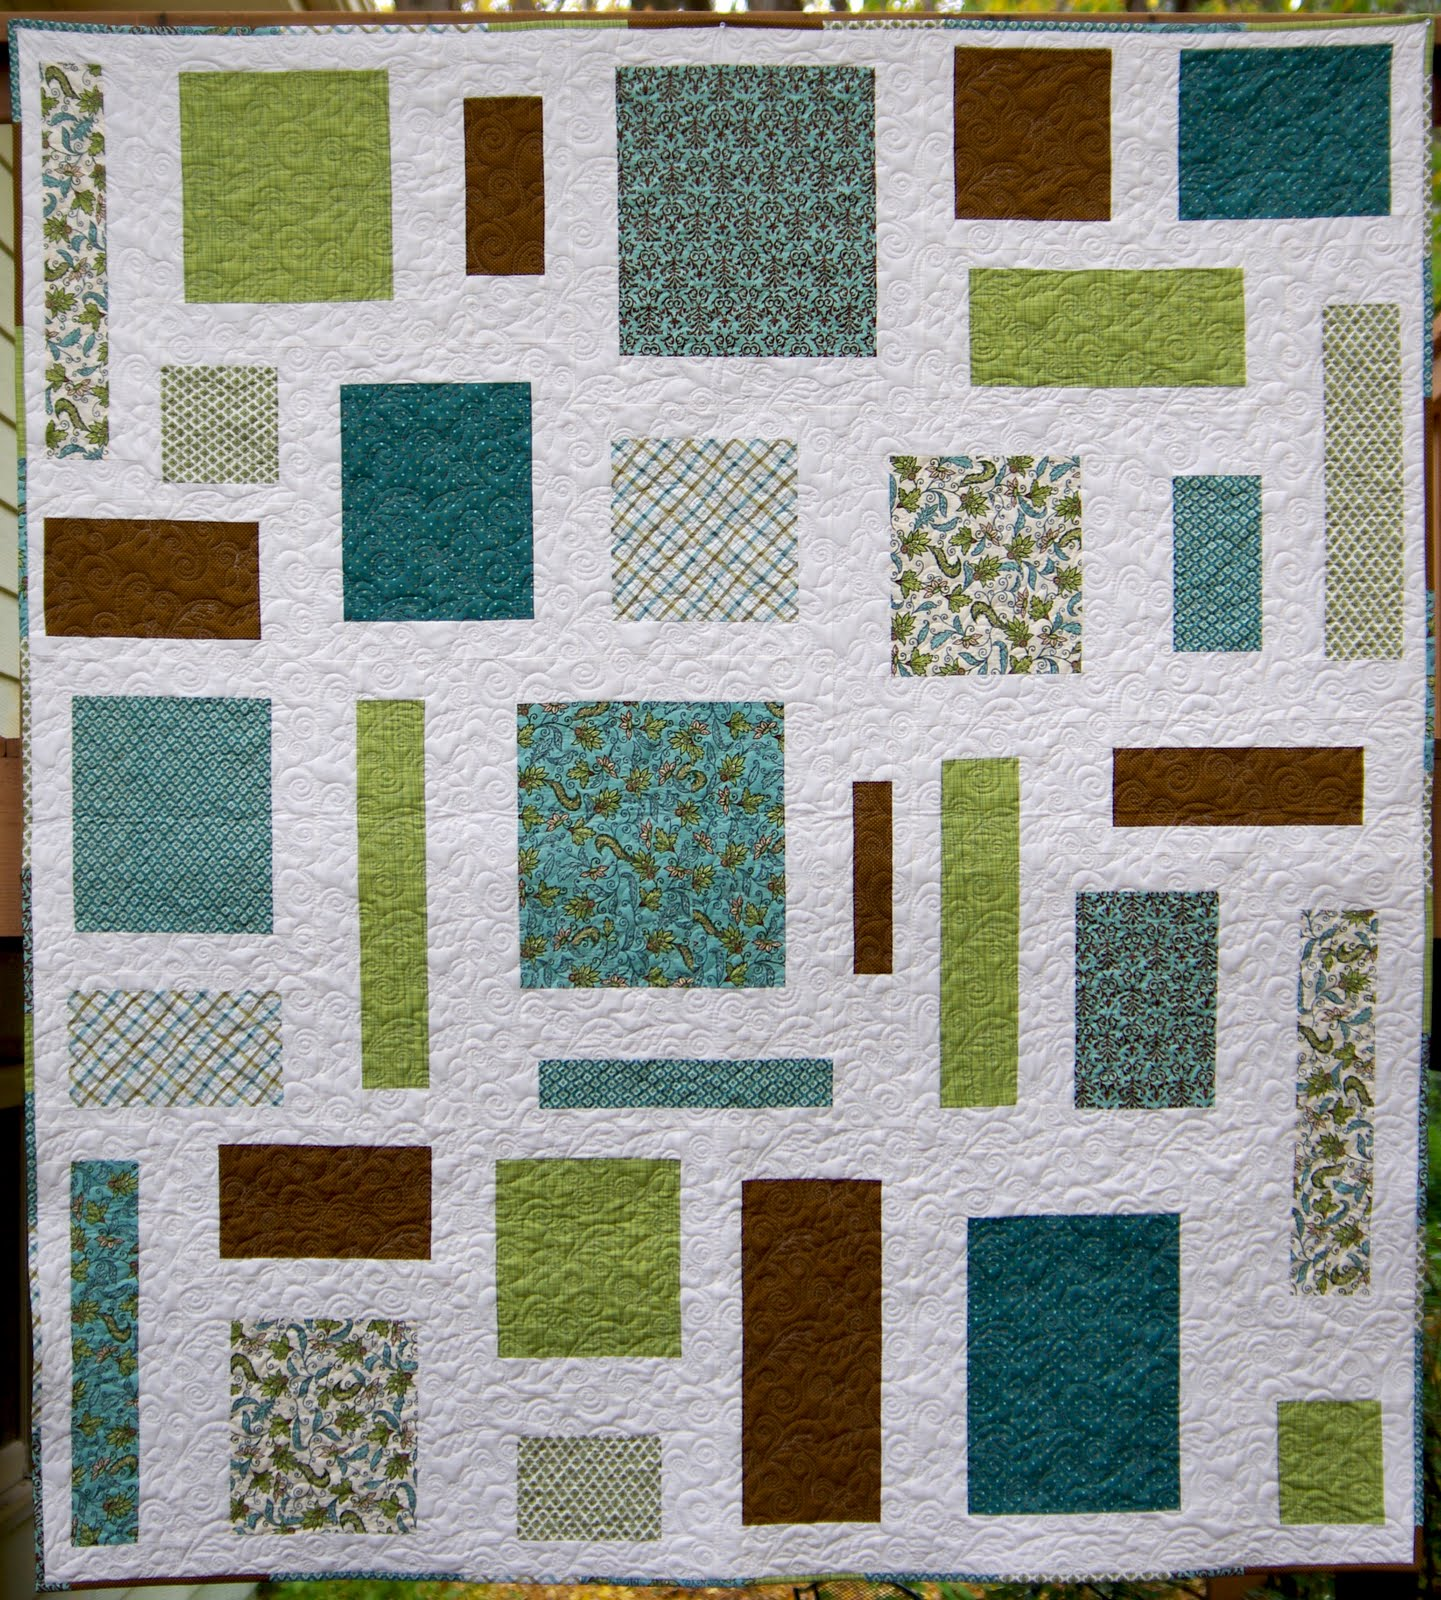 Quilt Patterns Using Squares And Rectangles : Ahhh...Quilting: Floating Rectangles Quilt